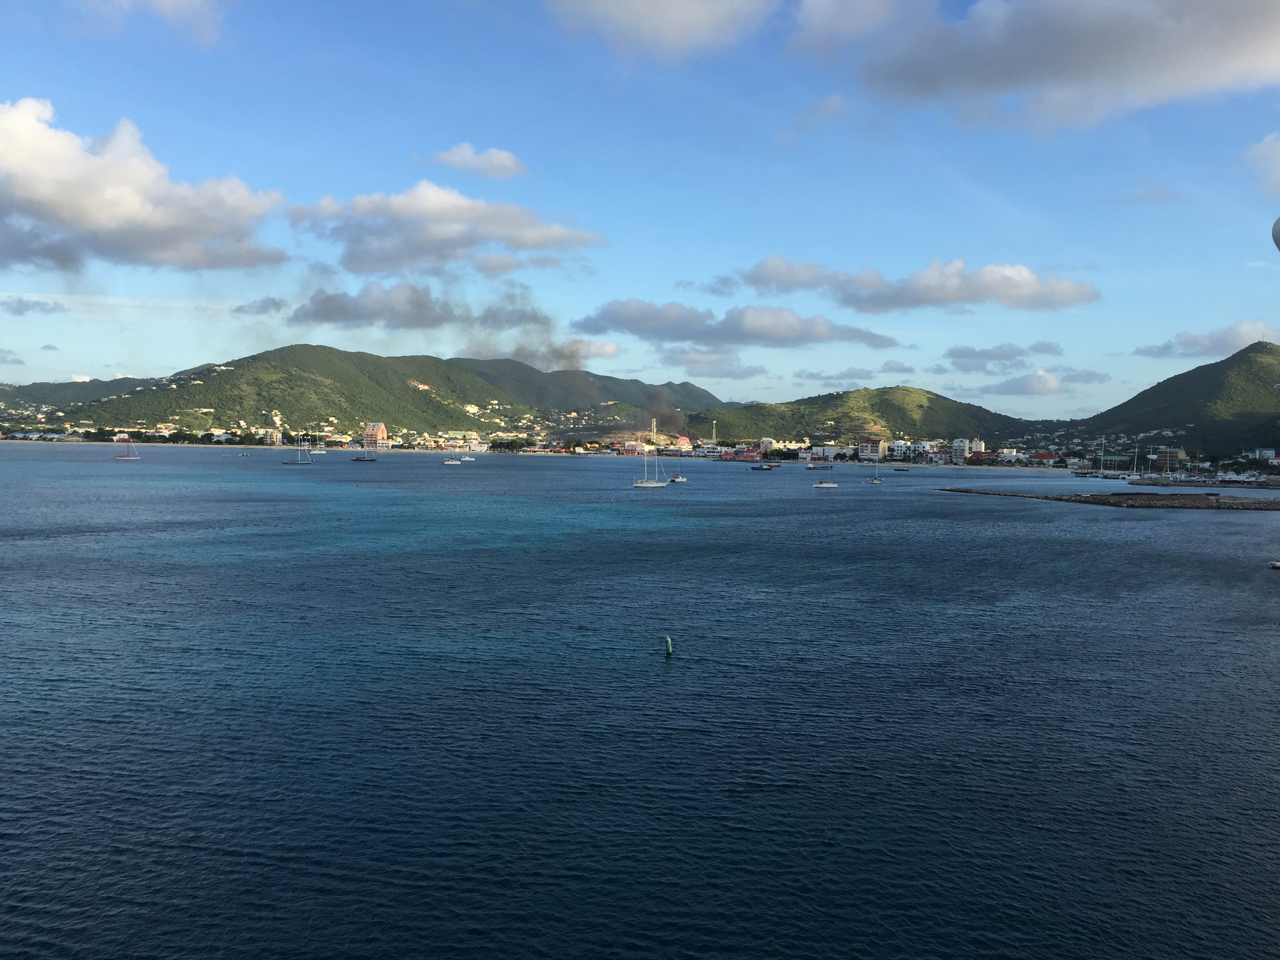 Did You Know That Sint Maarten Saint Martin Is The Smallest Landmass In The  World To Be Shared By Two Different Nations? The Dutch Govern The South  Side, ...